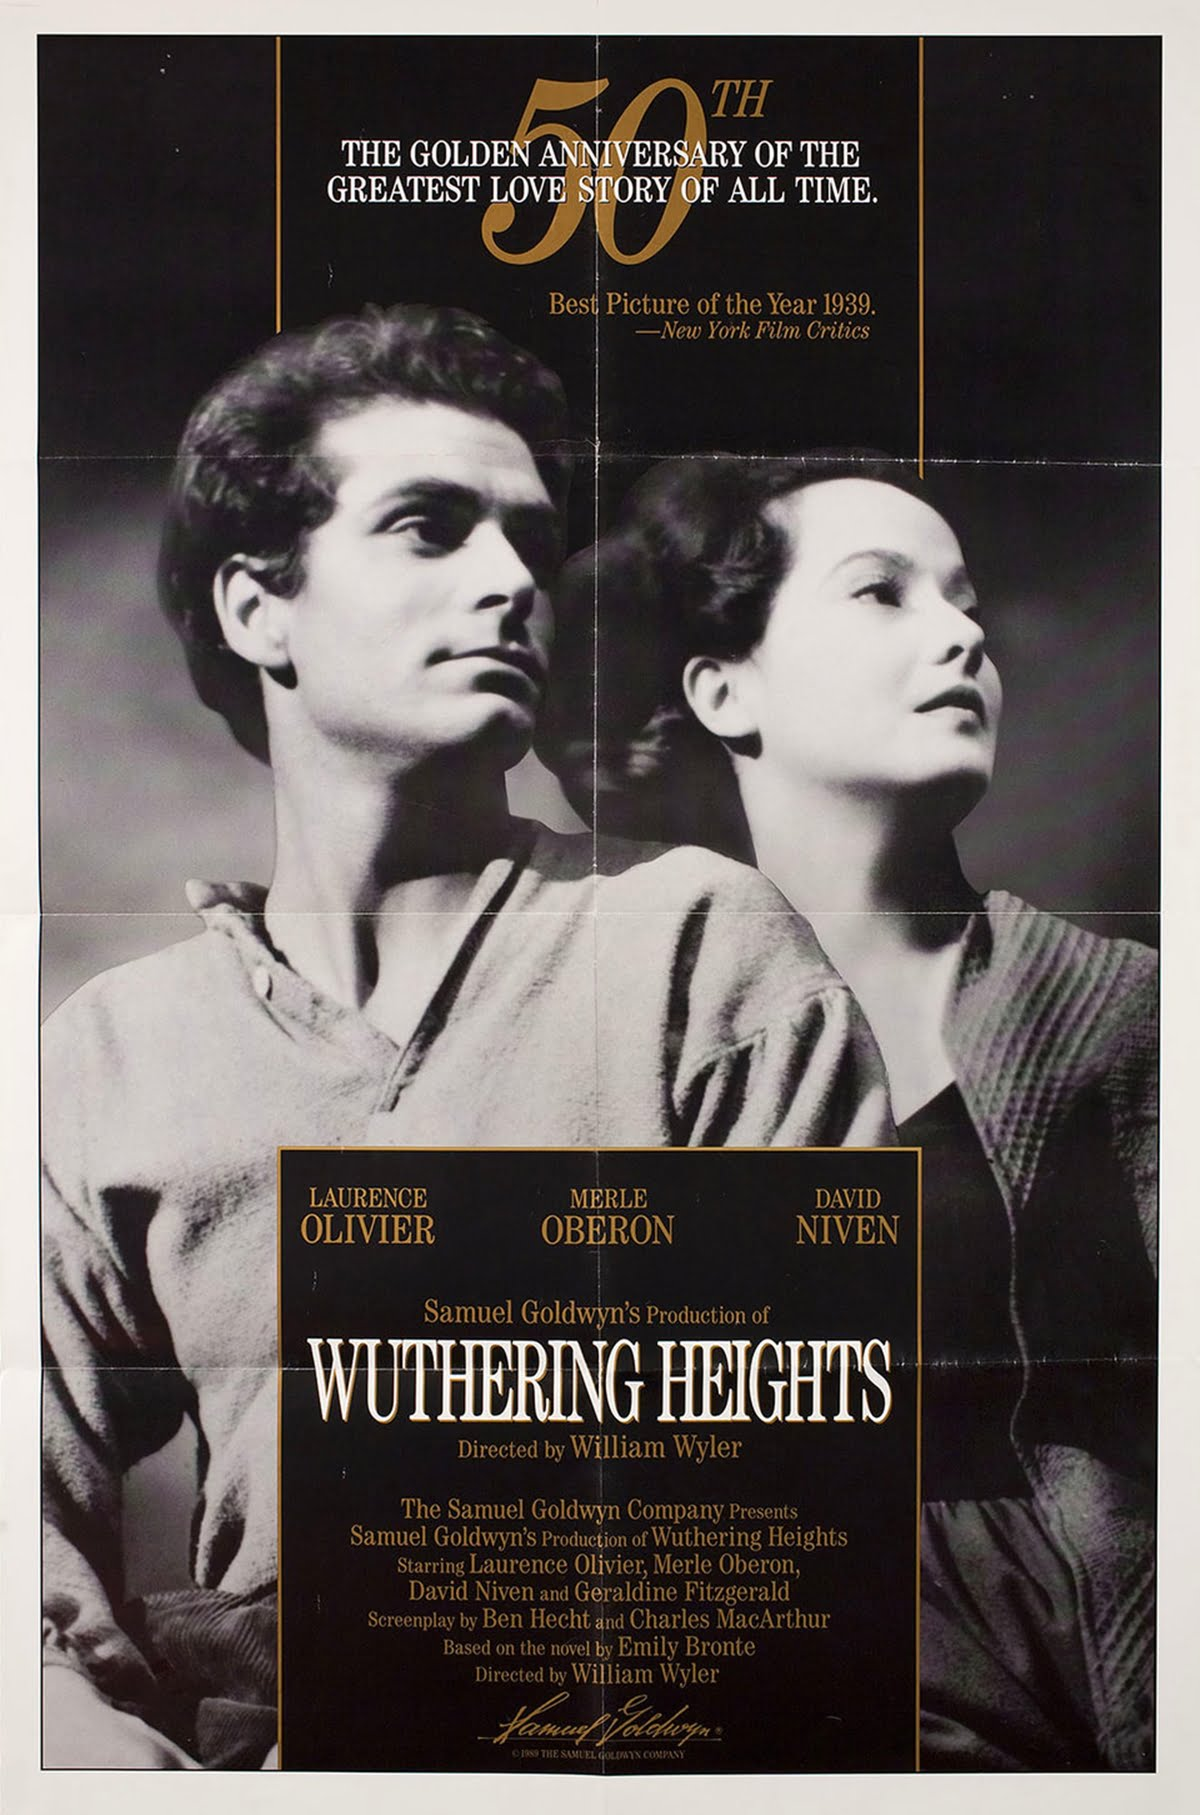 Wuthering Heights – The Tale Of Repressed Boyhood And Trauma